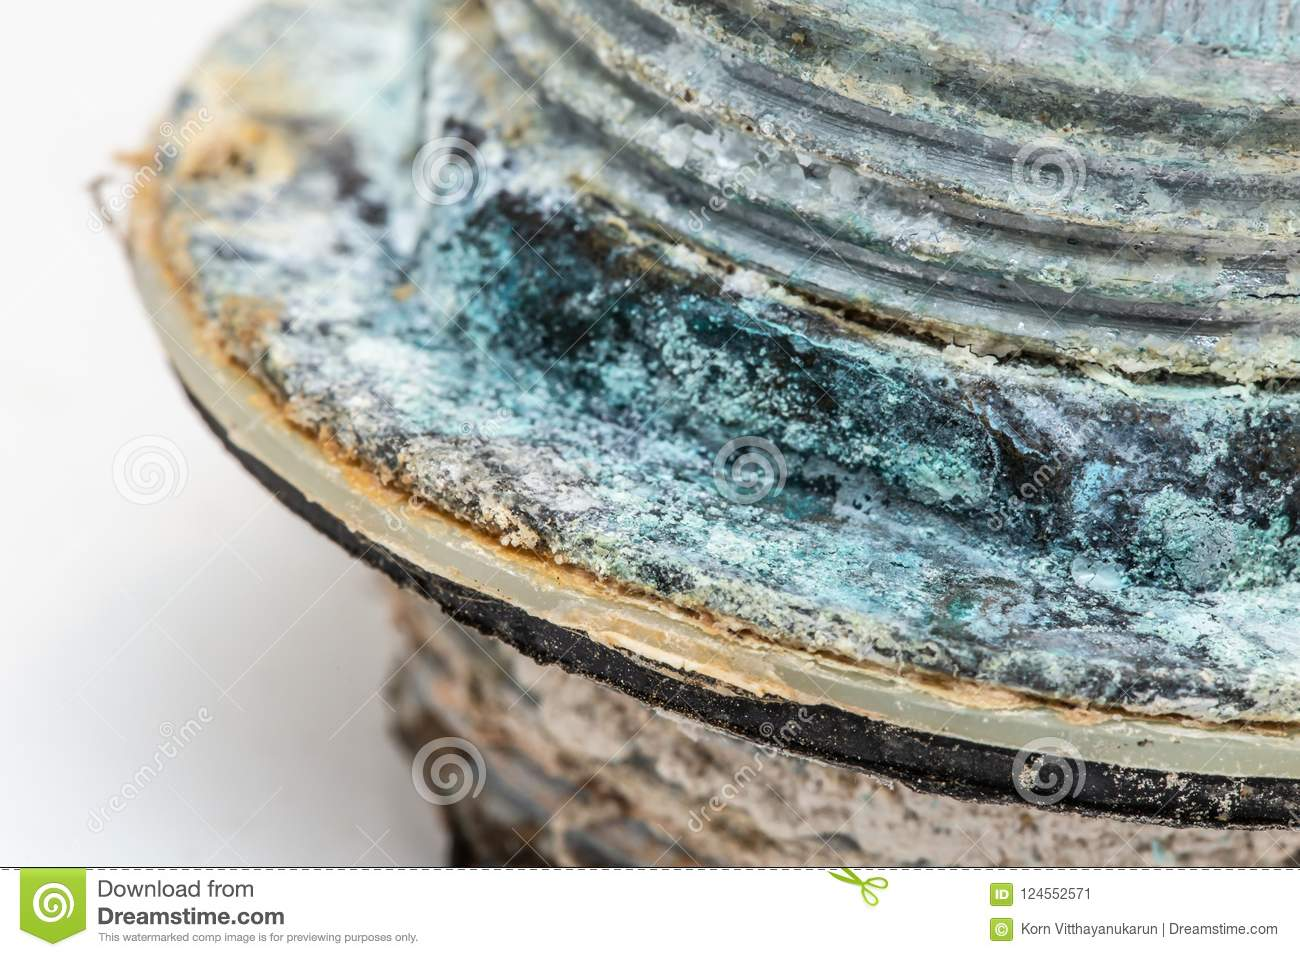 Pipe corrosion and copper sulfate rusty from water mineral